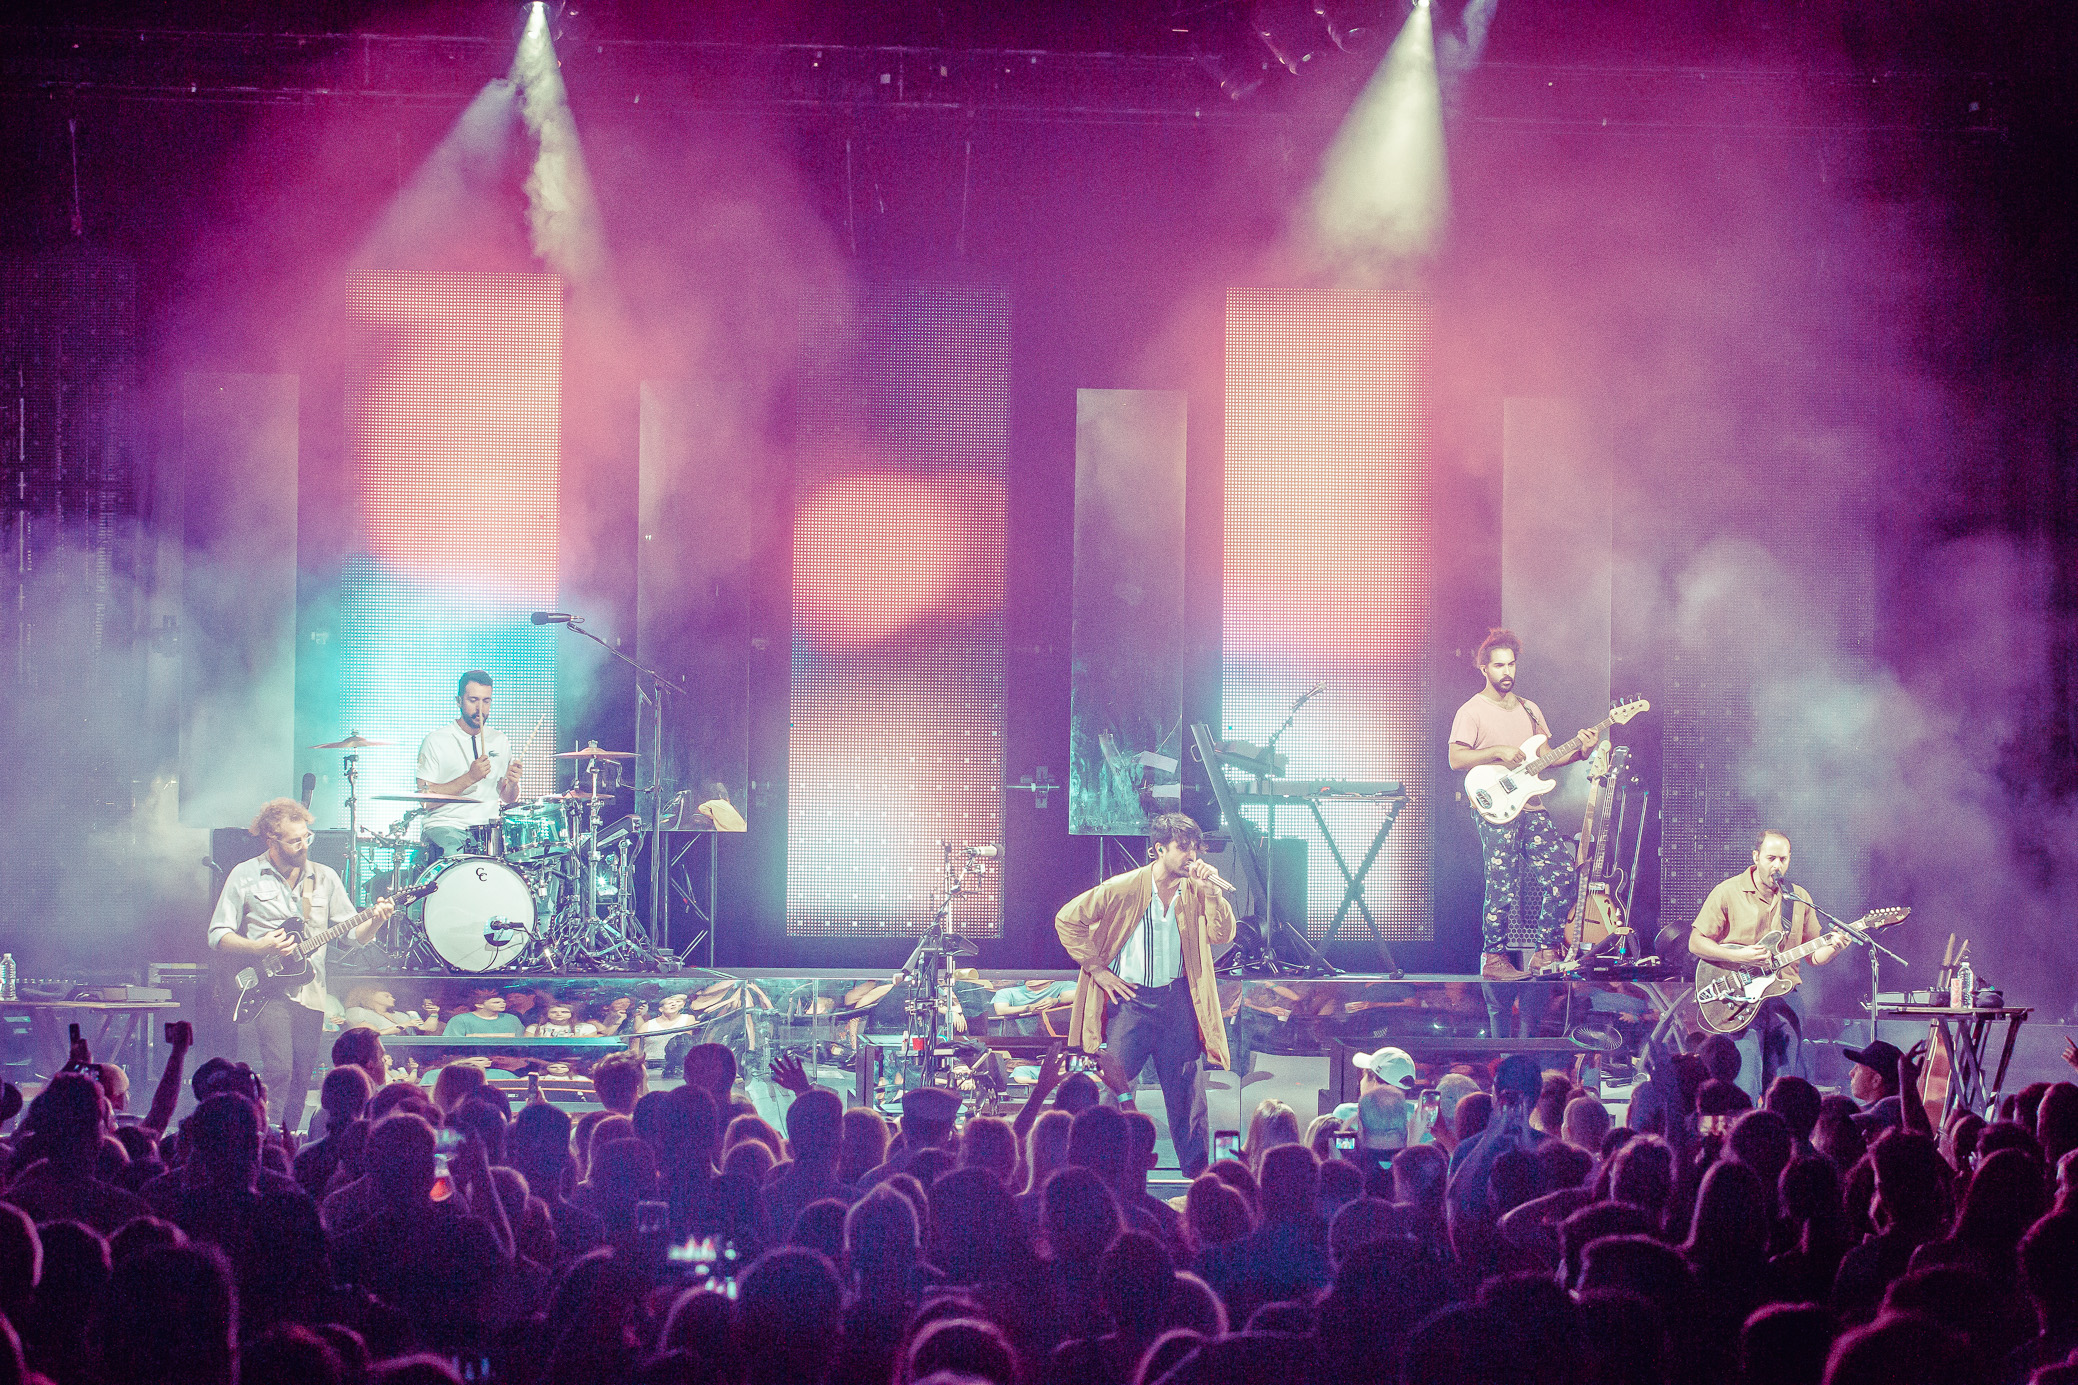 Young the Giant performs in concert at Cadence Bank Amphitheatre at Chastain Park in Atlanta, Georgia on July 14th, 2019. (Photo by David A. Smith / DSmithScenes)